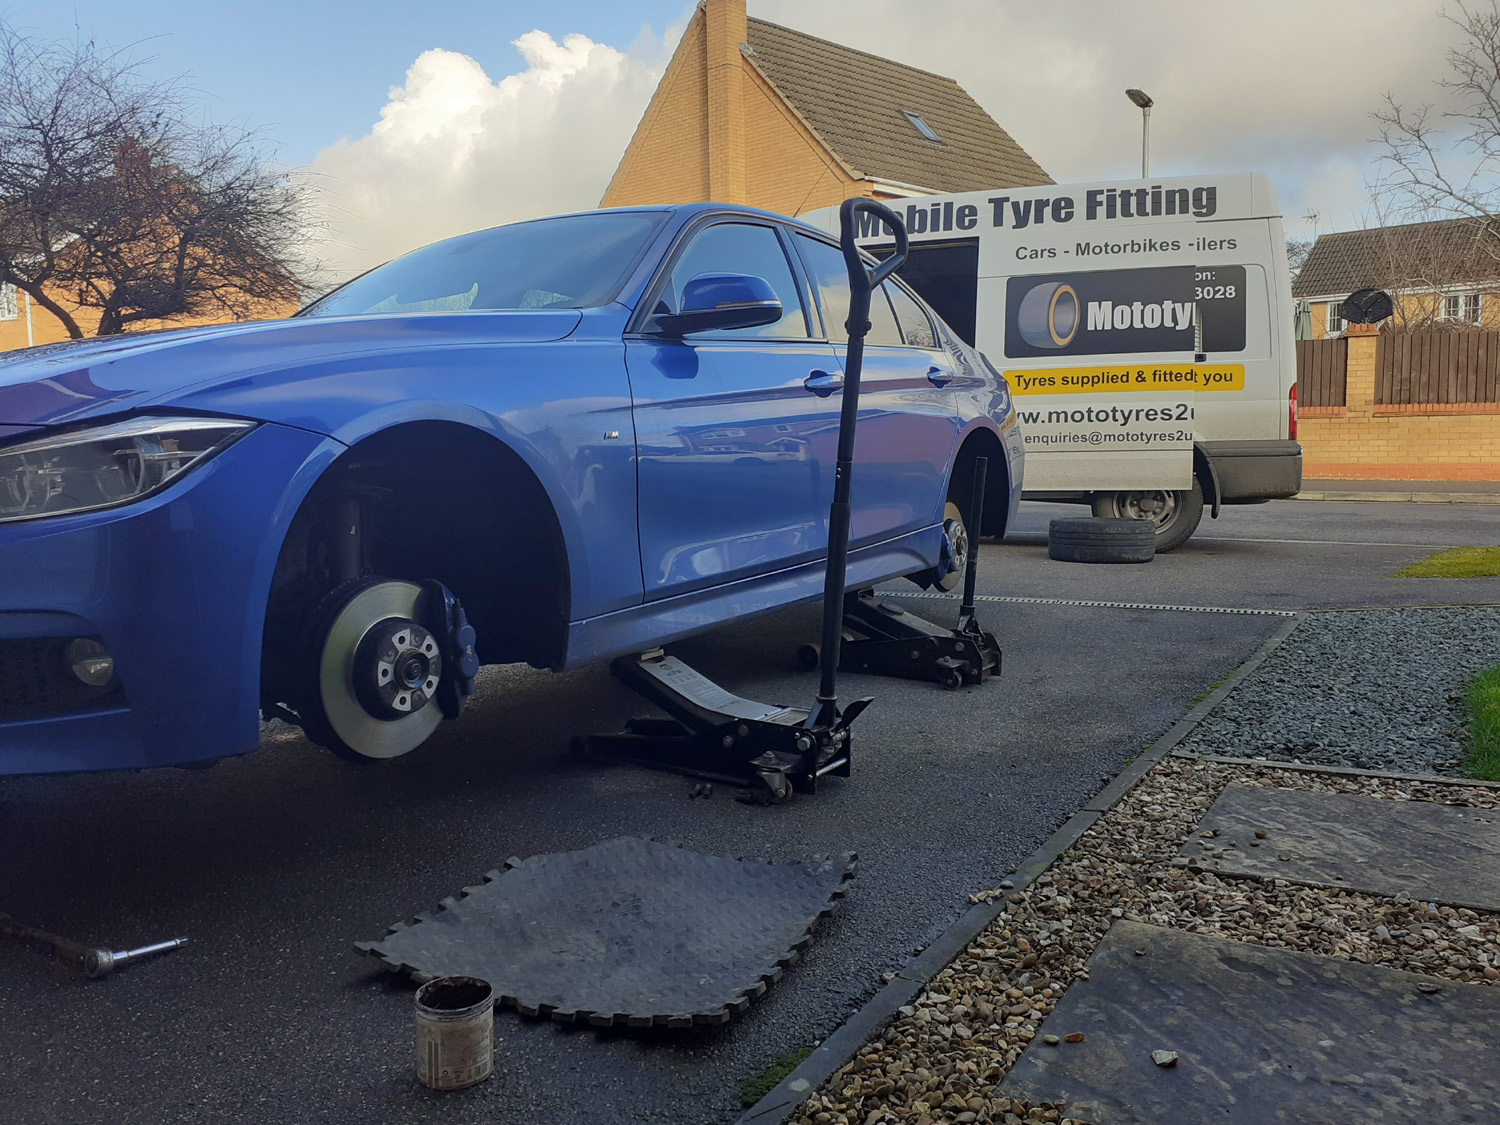 Mototyres 2 u Mobile Tyre fitting Lincolnshire Holbeach Tyres BMW having 4 tyres fitted changing from runflats to none runflat conventional